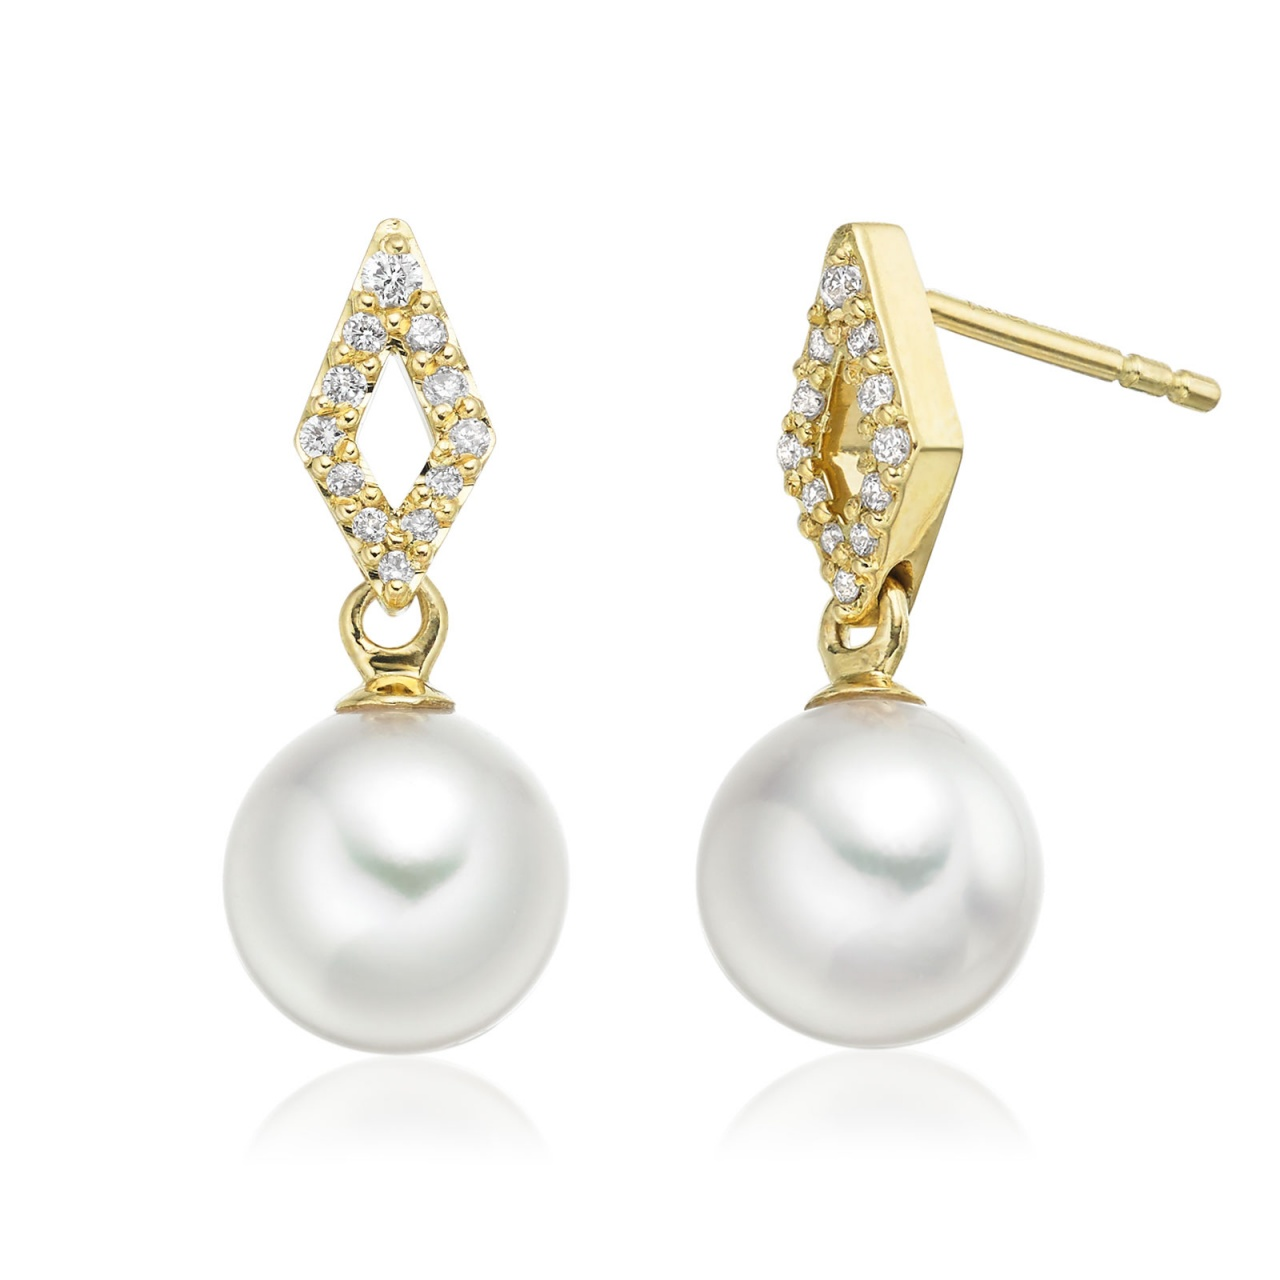 Zigzag Akoya Pearl and Diamond Earrings in Yellow Gold